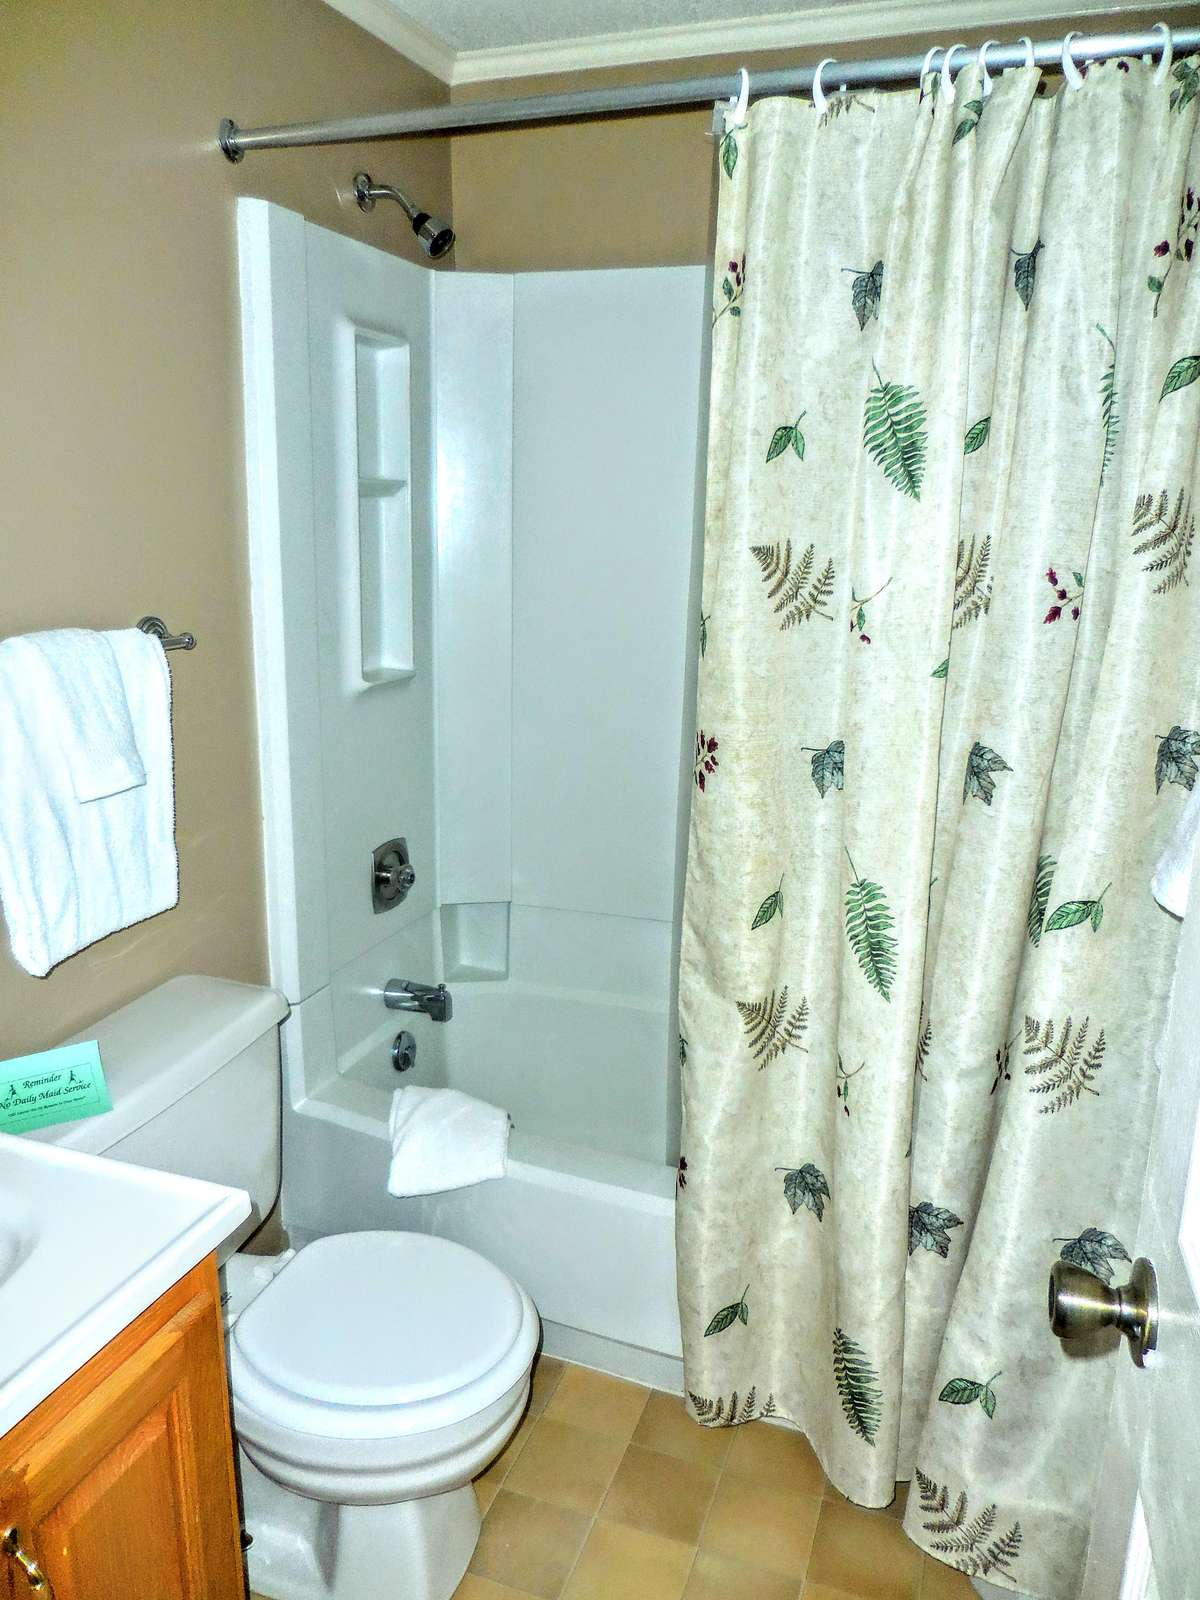 Master bedroom has full-sized attached bathroom; spacious with plenty of privacy!